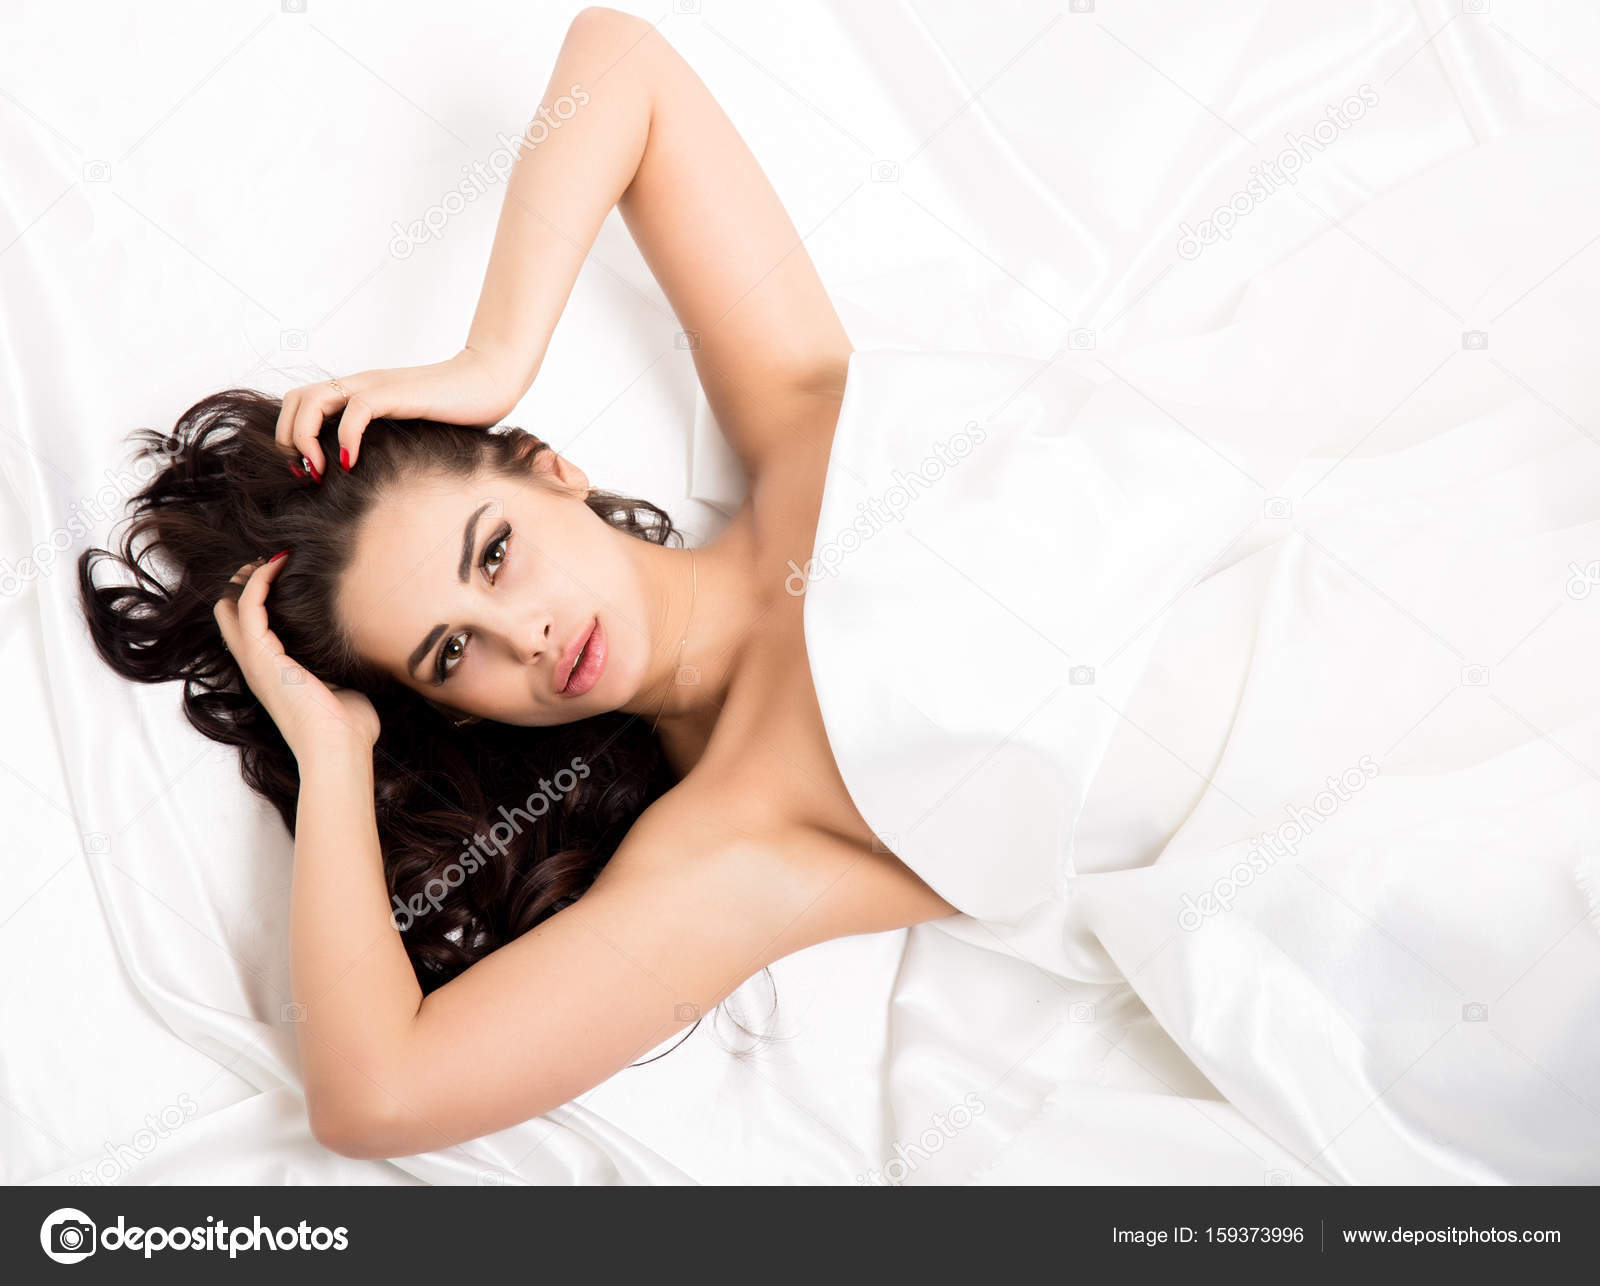 Nude white woman on bed